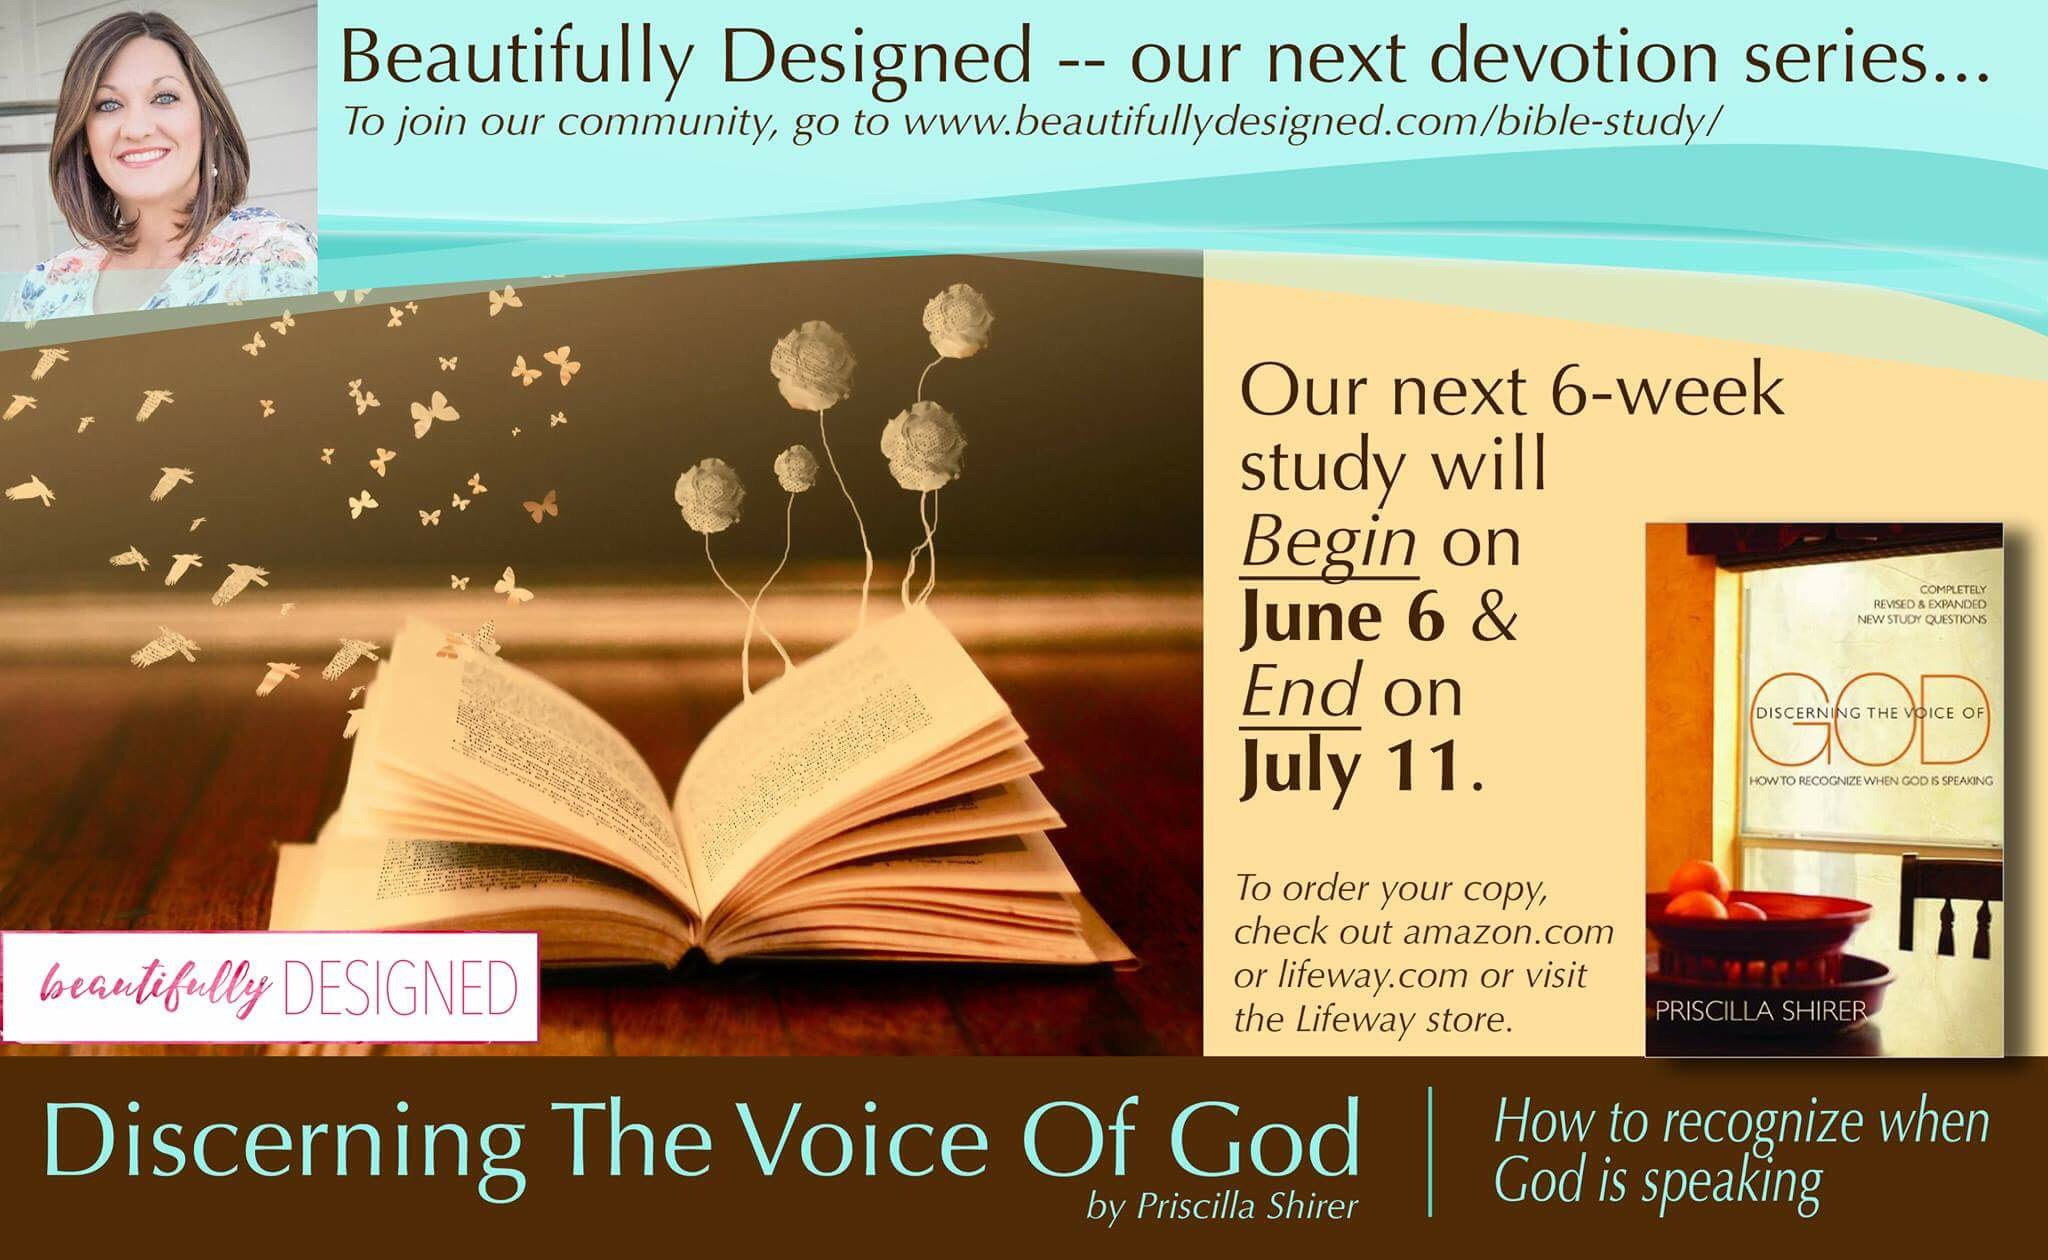 Discerning the Voice of God:  13-14